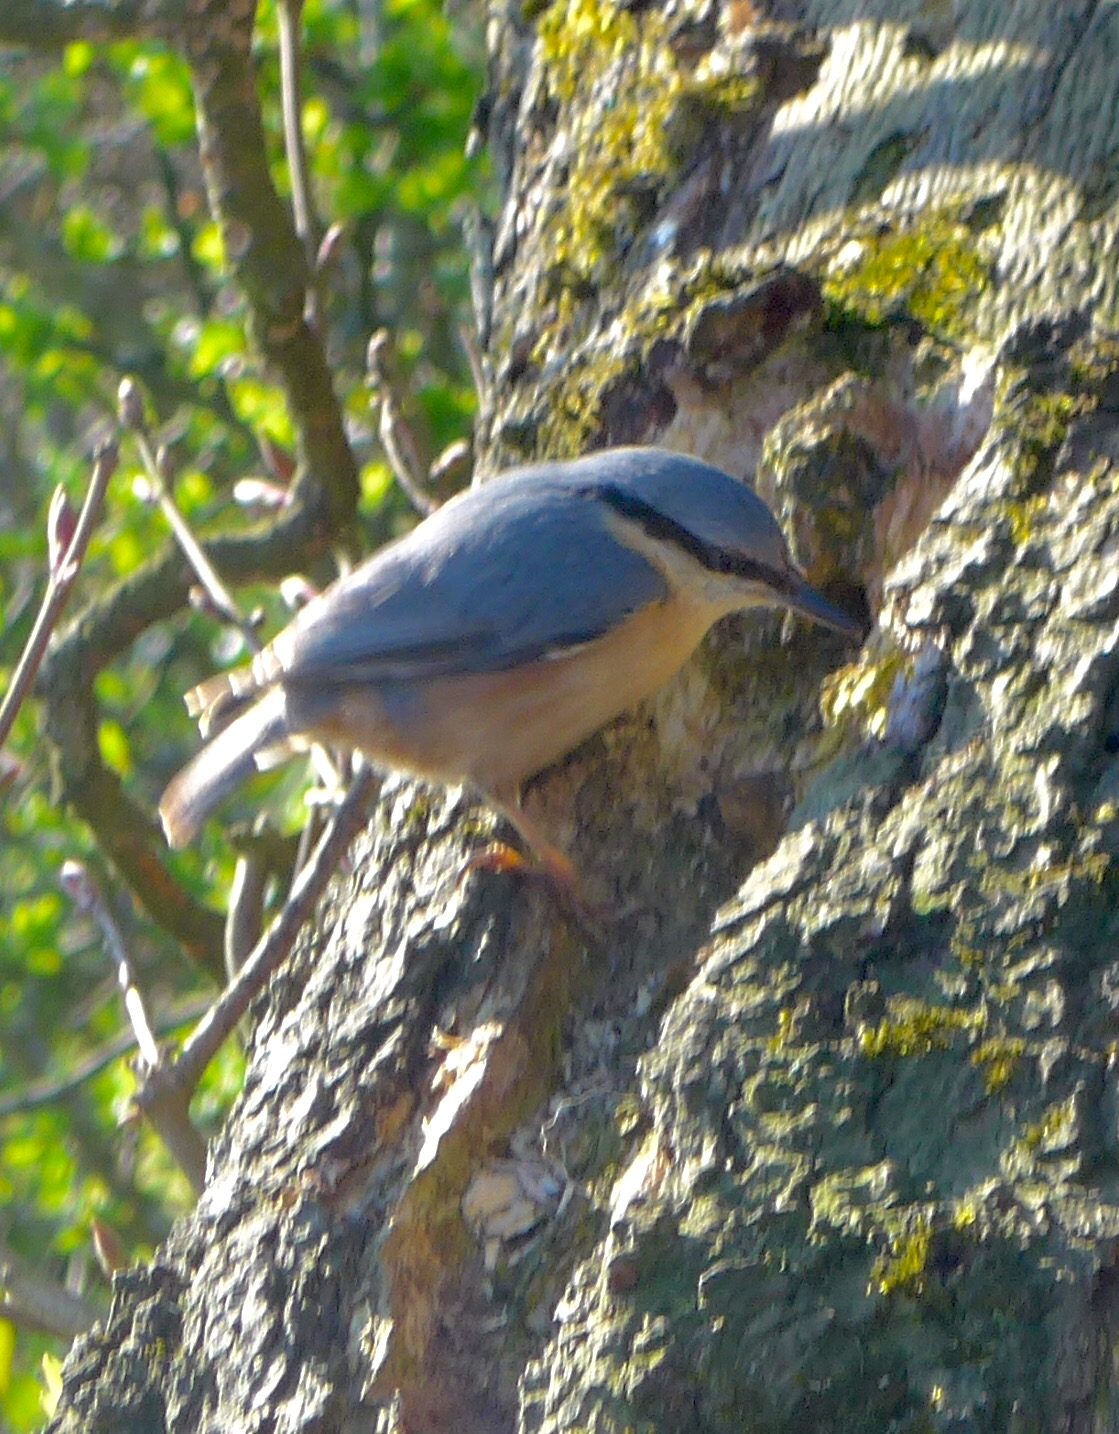 Nuthatch pecking at a tree trunk by Artist Diane Young